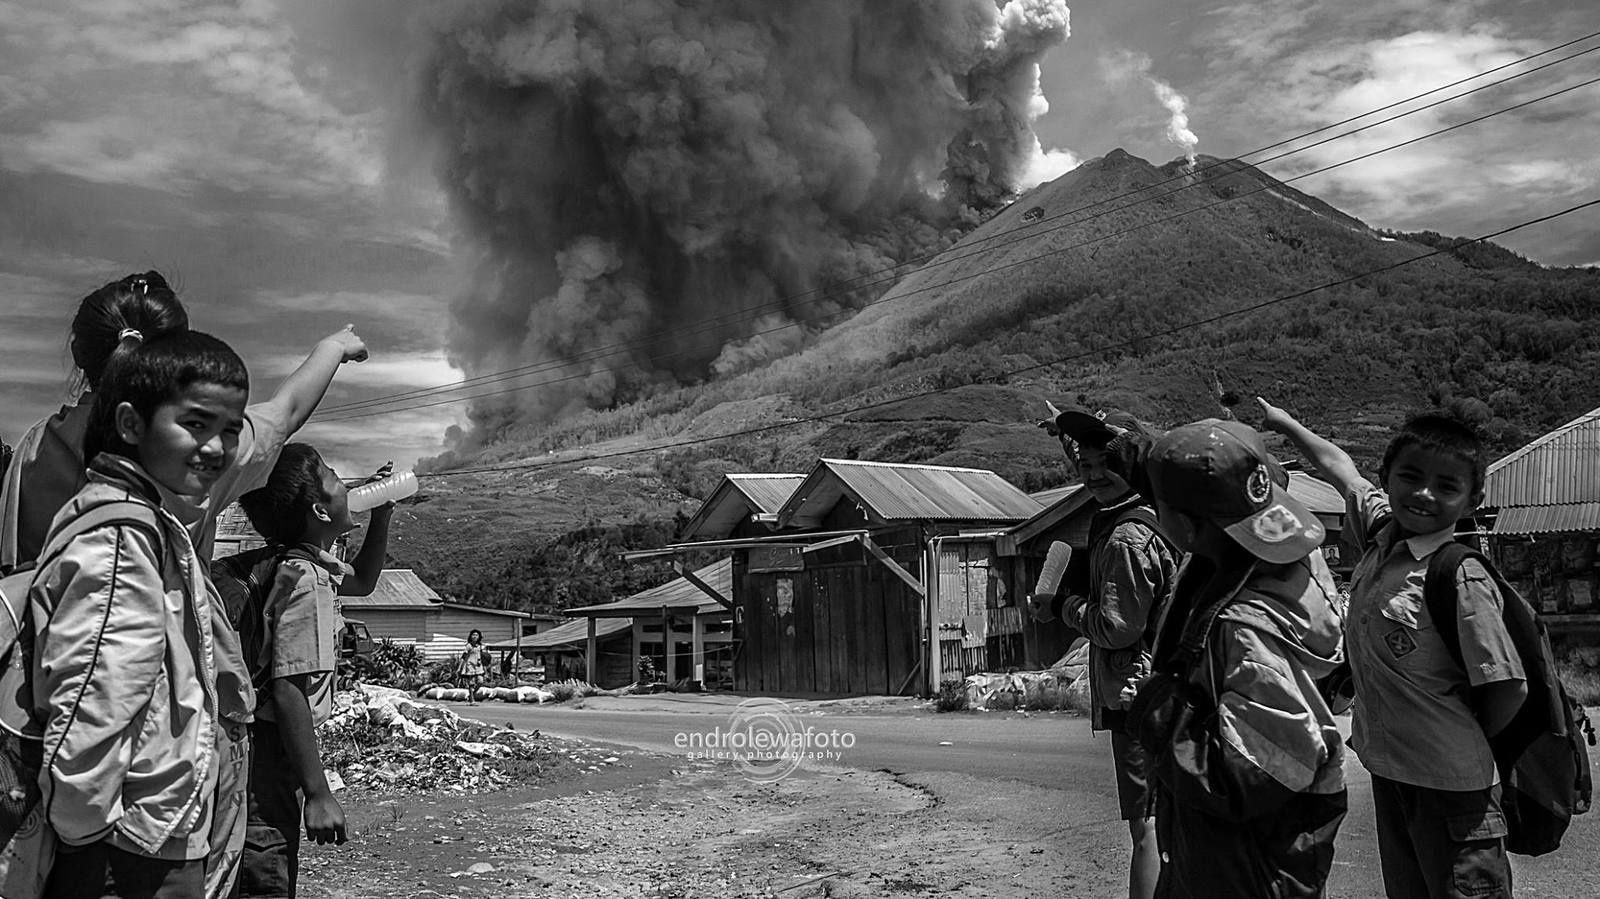 Sinabung - 05/02/2016 - eruption seen by schoolchildren from the other side - photo Endrolewa.